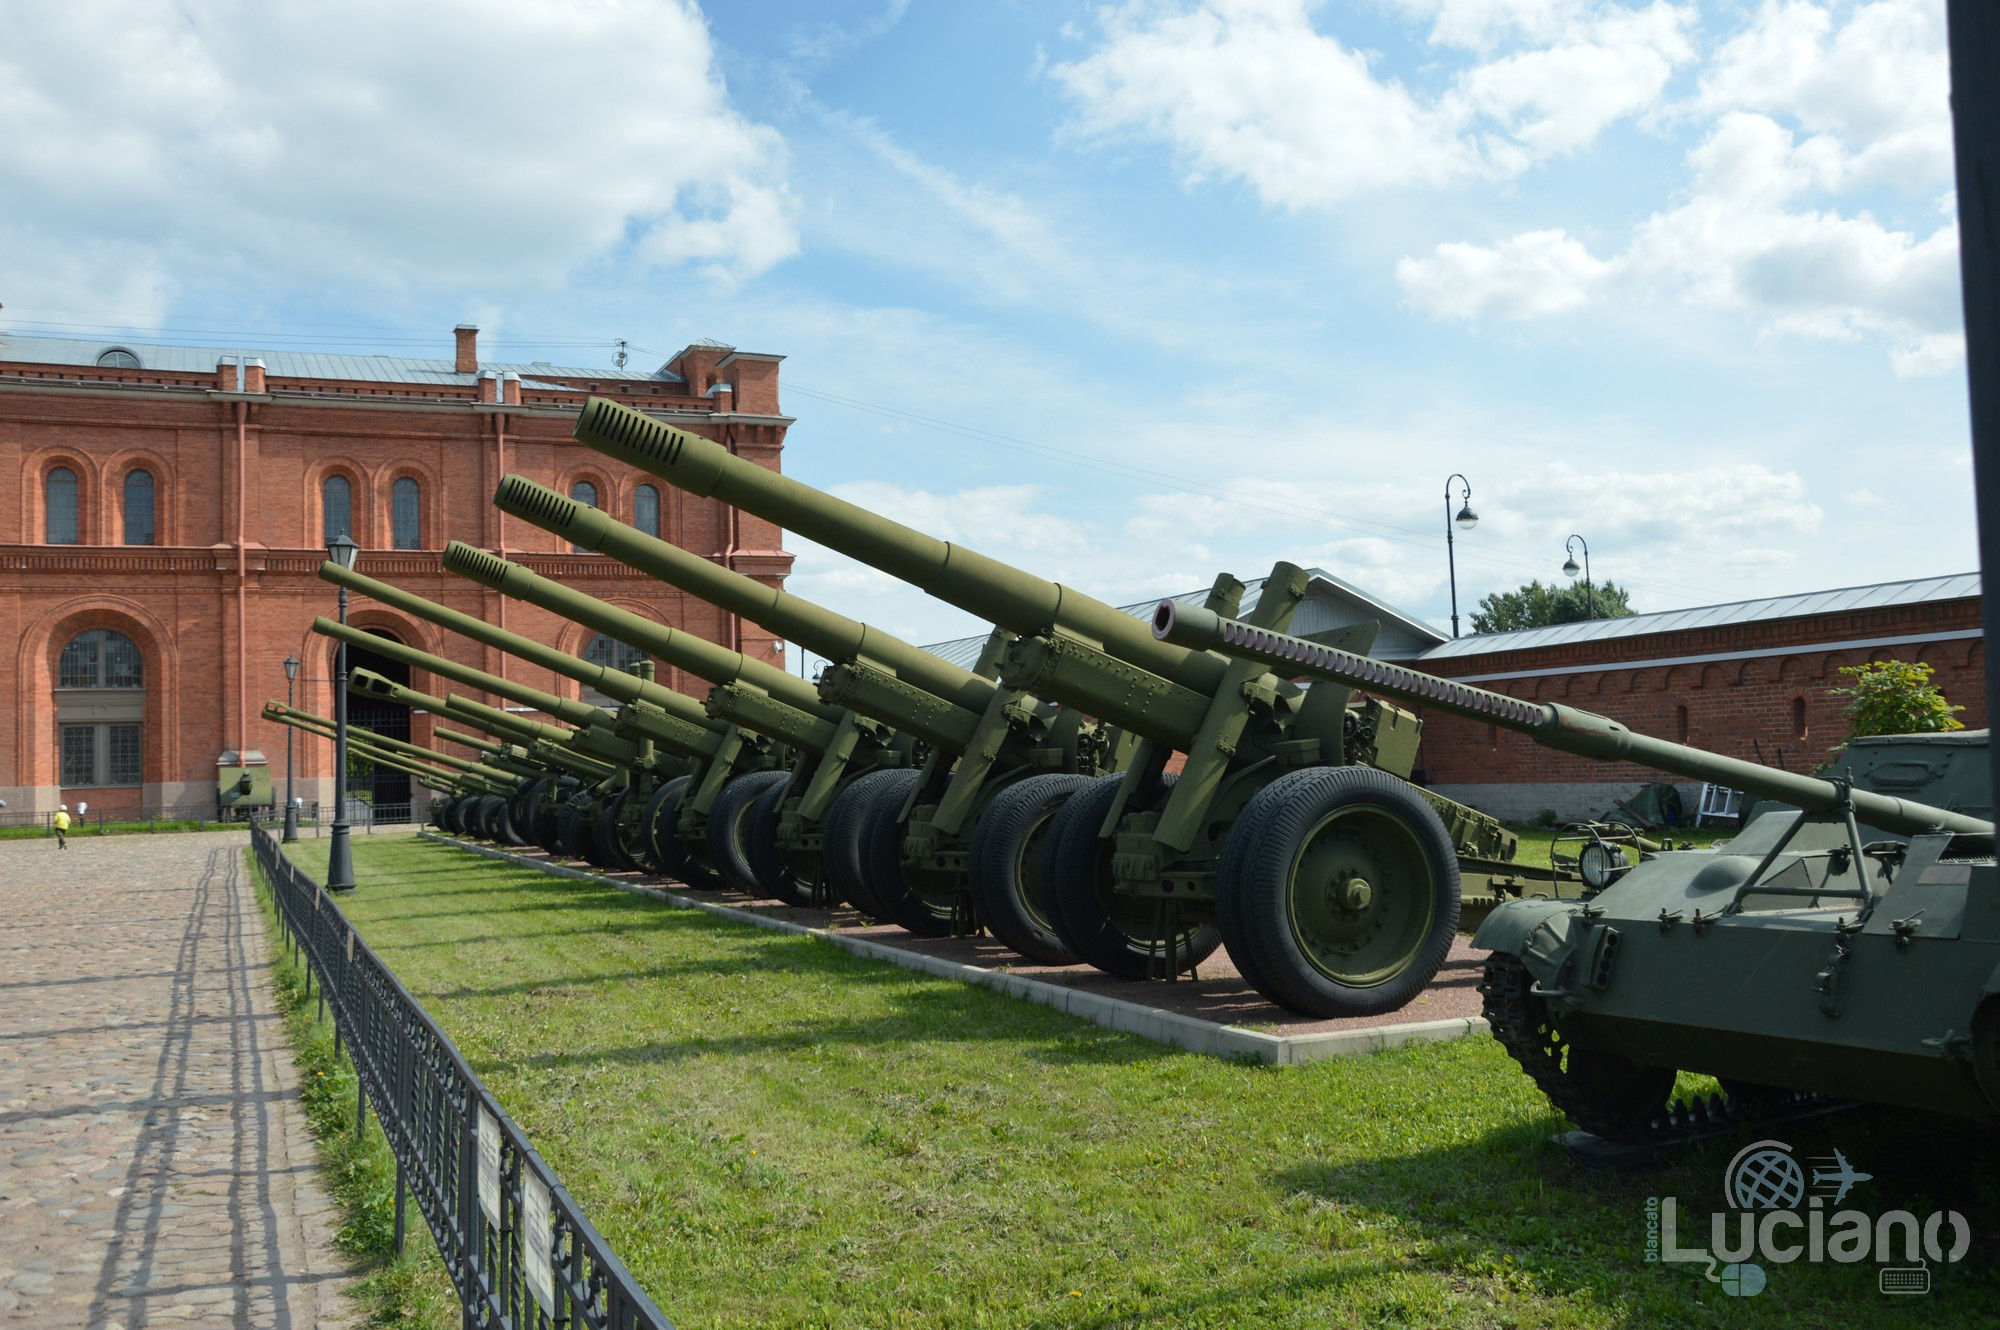 Military-Historical-Museum-of-Artillery-Engineer-and-Signal-Corps-St-Petersburg-Russia-Luciano-Blancato- (15)